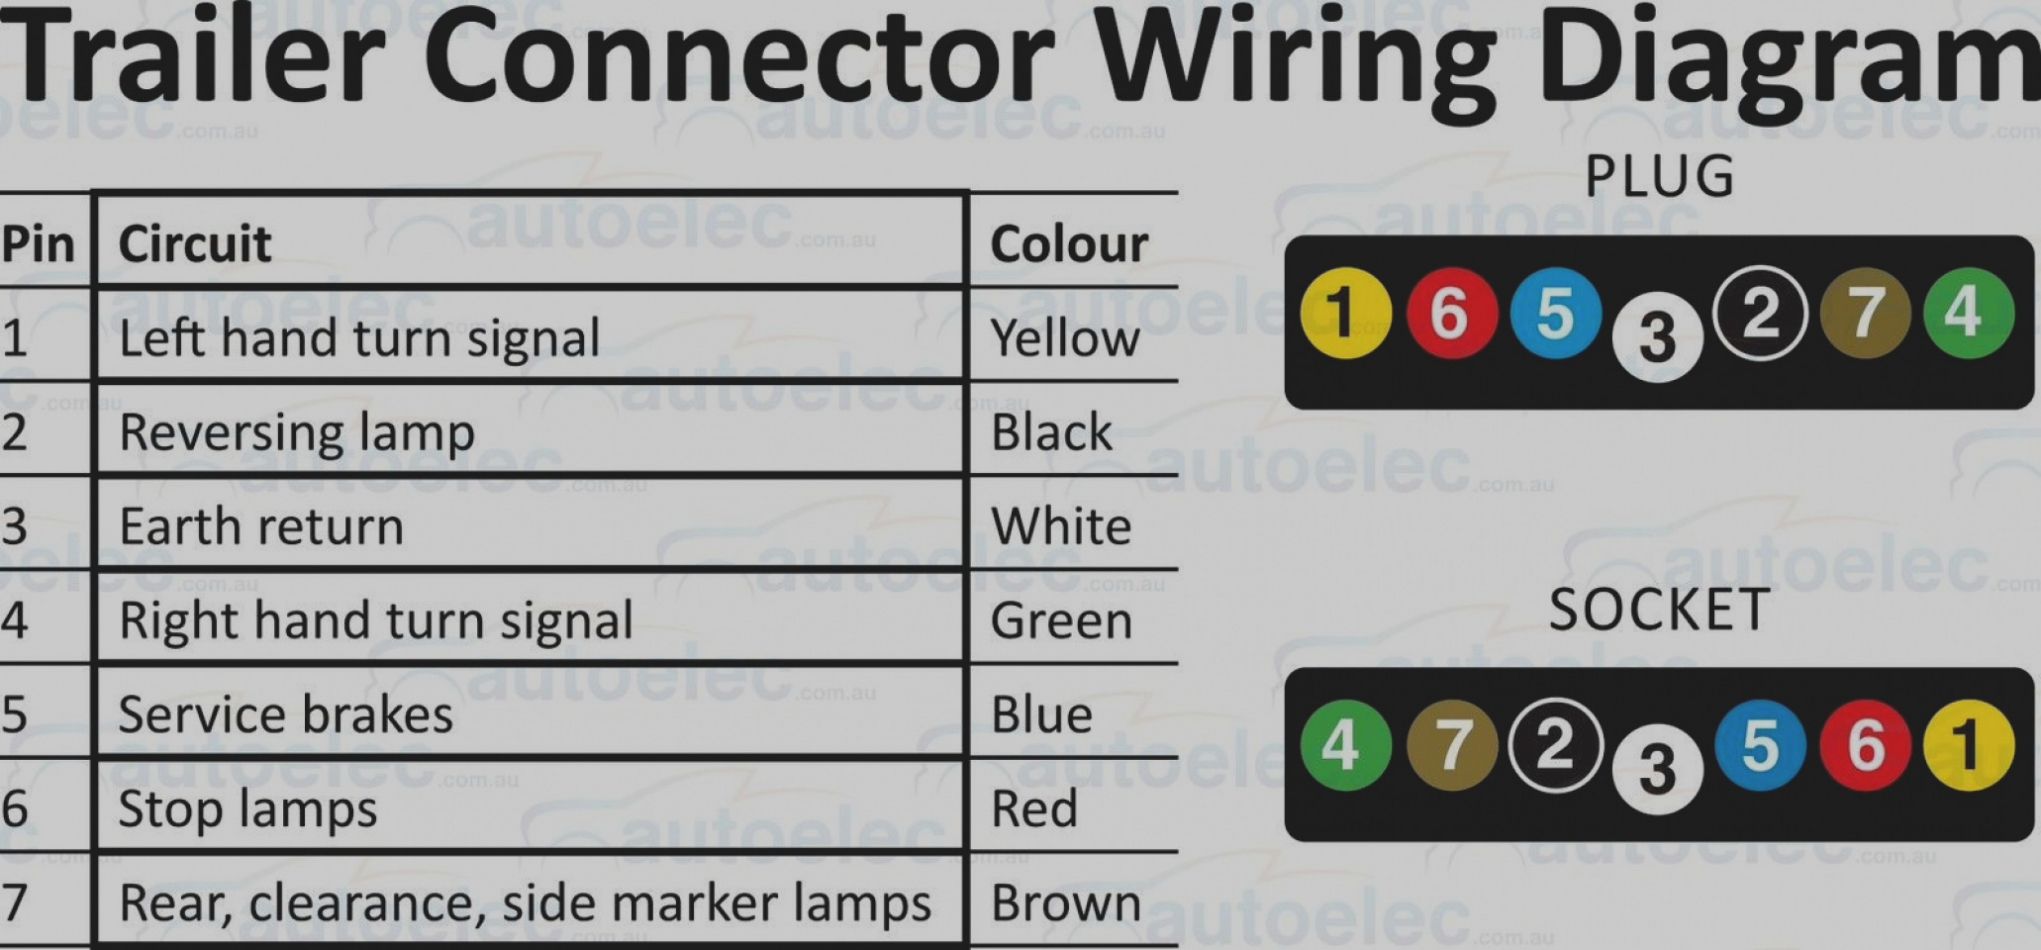 6 Pin Trailer Wiring Diagram – 27 Inspirational Britax Trailer Plug - 6 Pin Trailer Connector Wiring Diagram